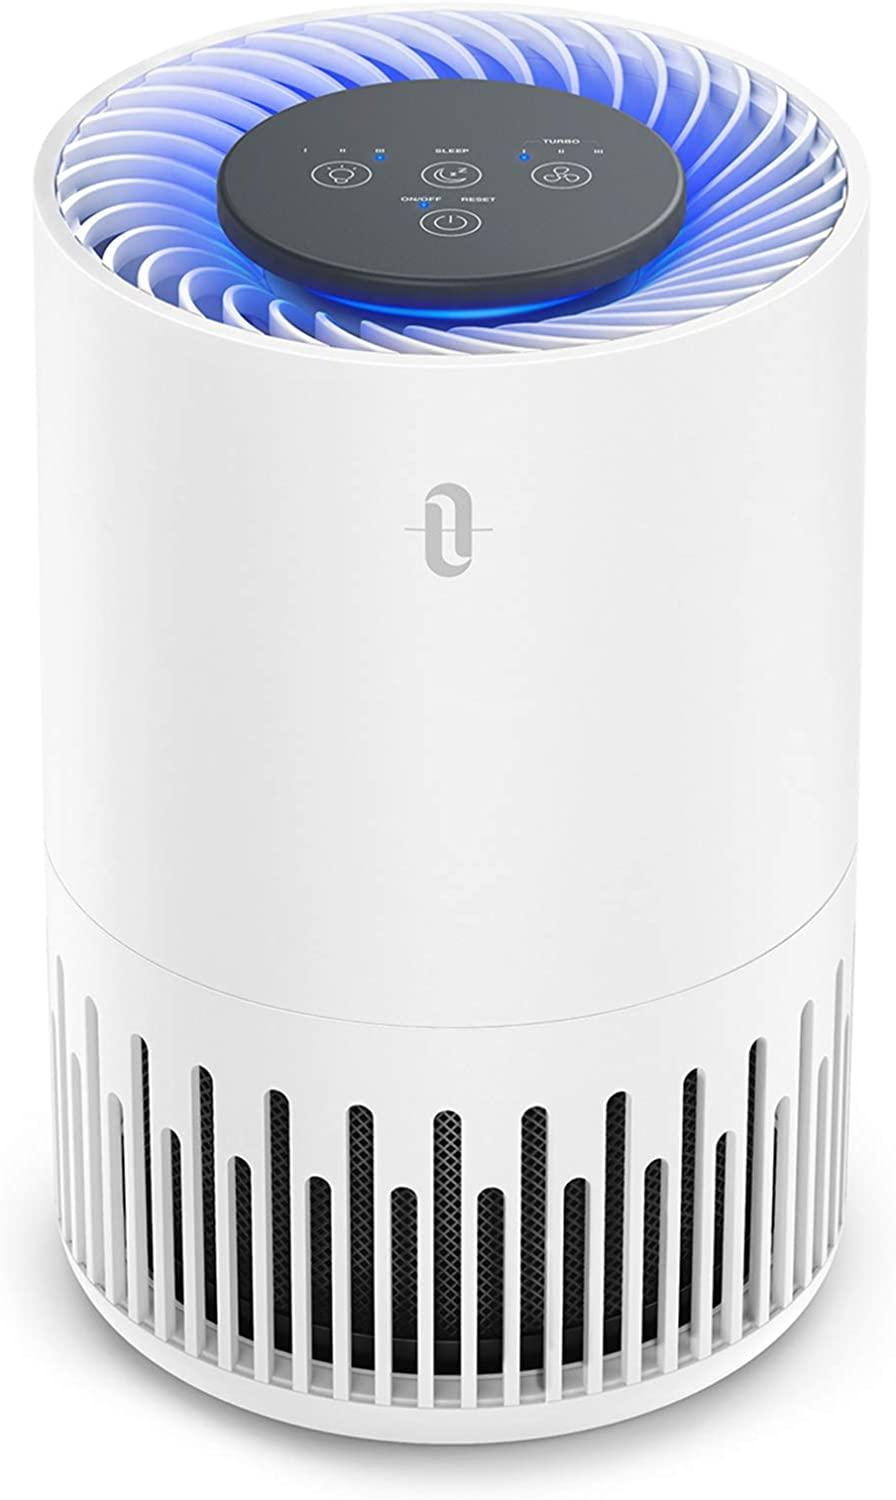 TaoTronics HEPA Air Purifier for Home - Amazon, $110 (originally $135)